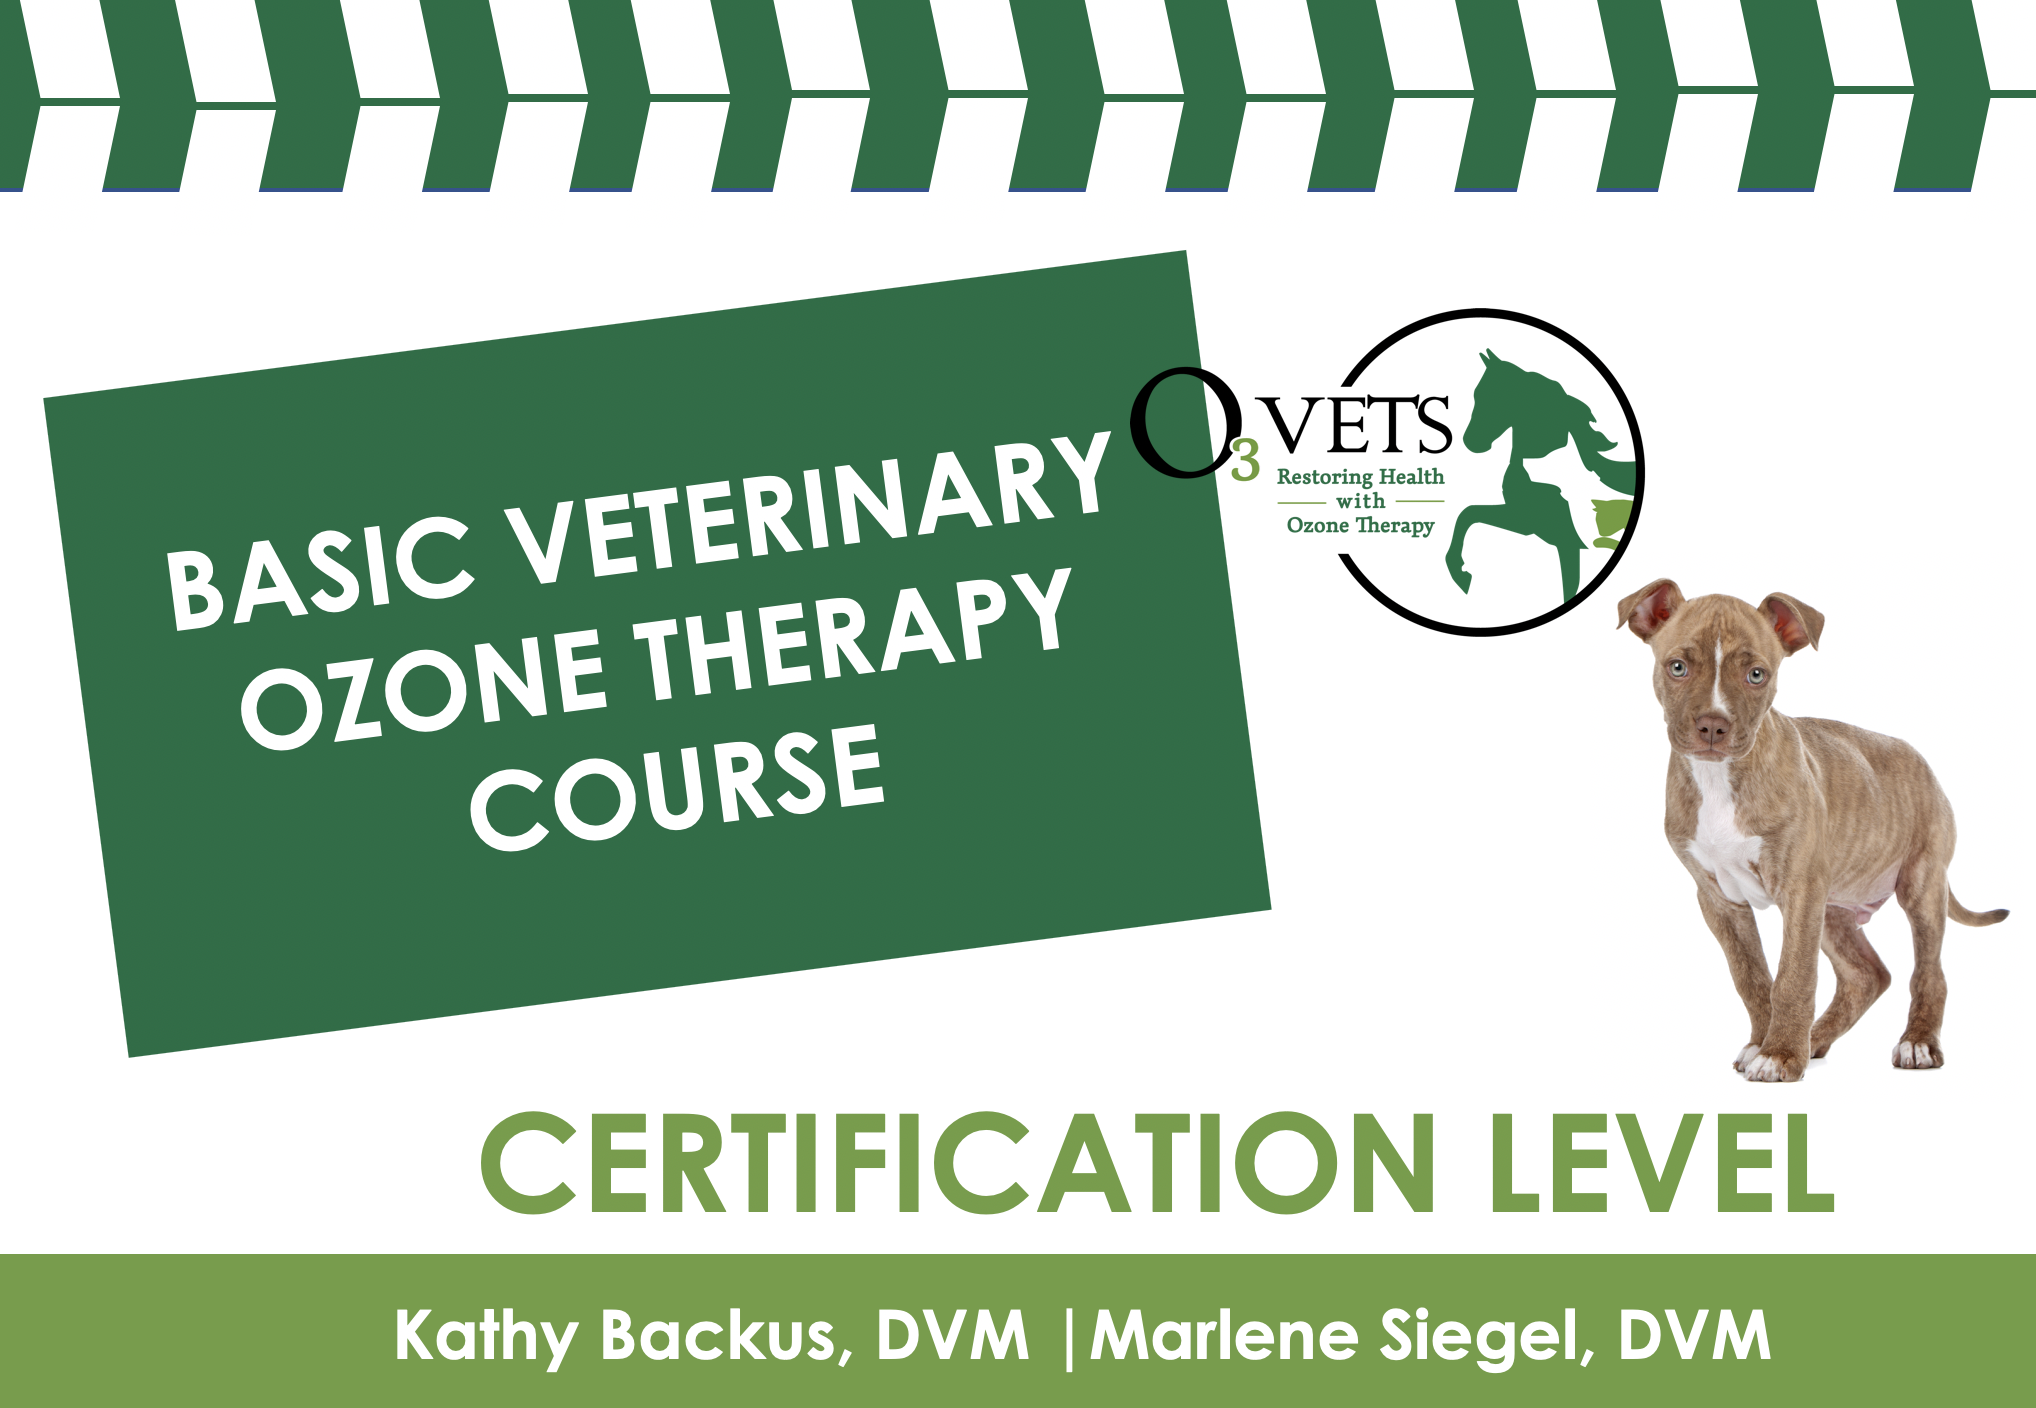 Basic Veterinary Ozone Therapy Course